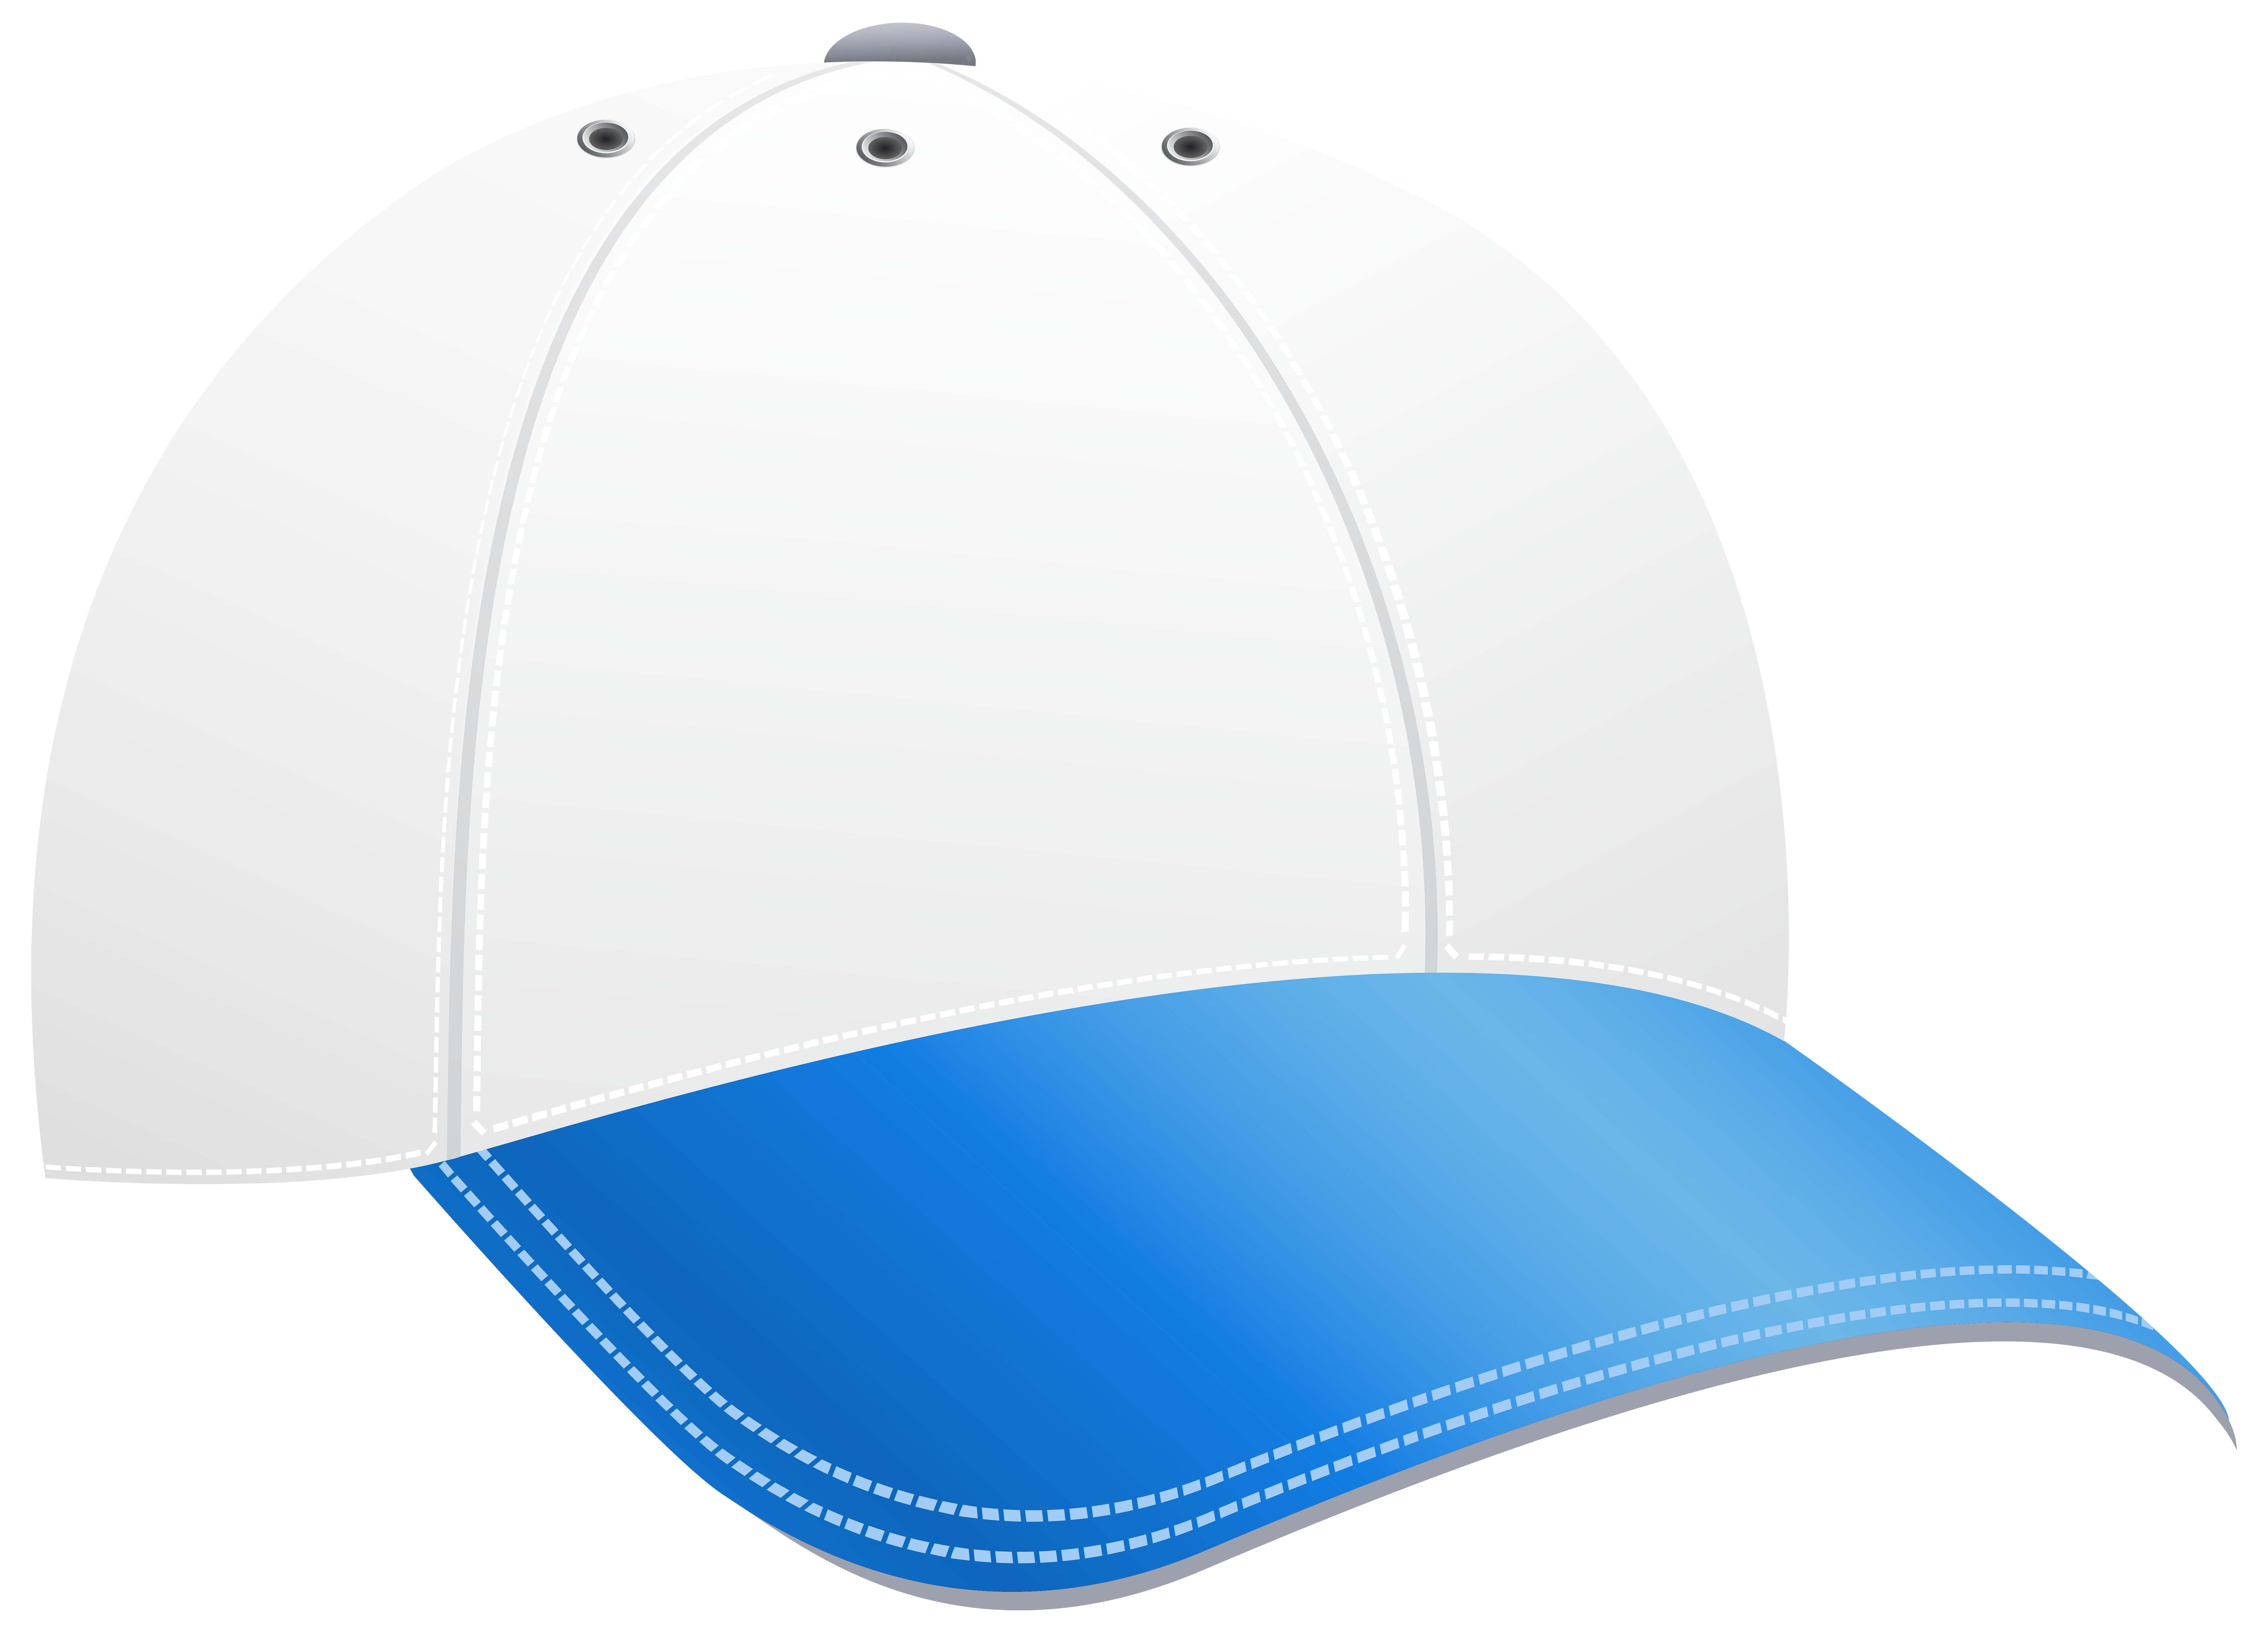 Baseball cap clipart transparent background graphic library download Cap Transparent PNG Clip Art Image | Gallery Yopriceville - High ... graphic library download